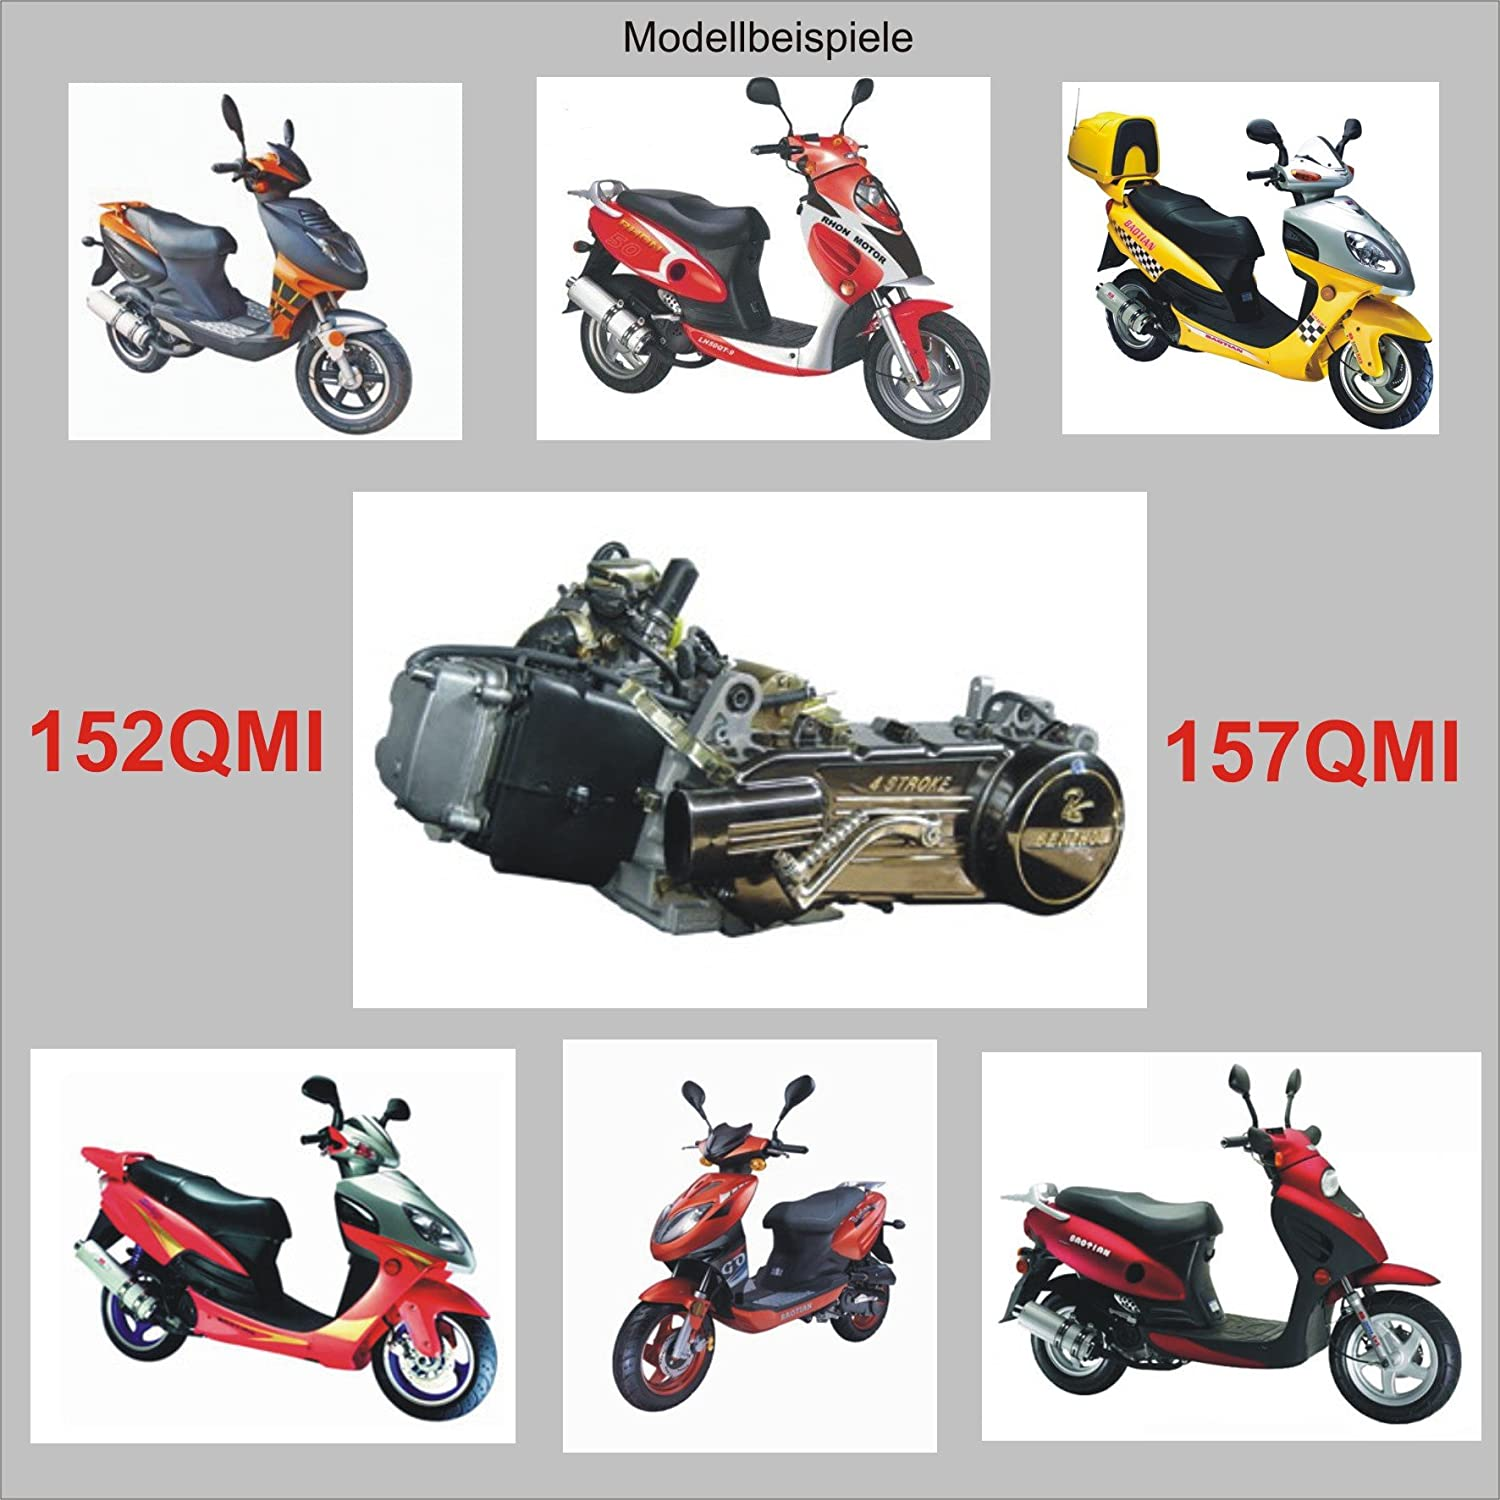 gy6-ersatzteile Spiegel Set Links /& RECHTS M8 z.b BAOTIAN BENZHOU YIYING Flex TECH Peugeot QINGQI REX RS AGM GMX HYOSUNG WANGYE KREIDLER ZNEN China Roller etc.